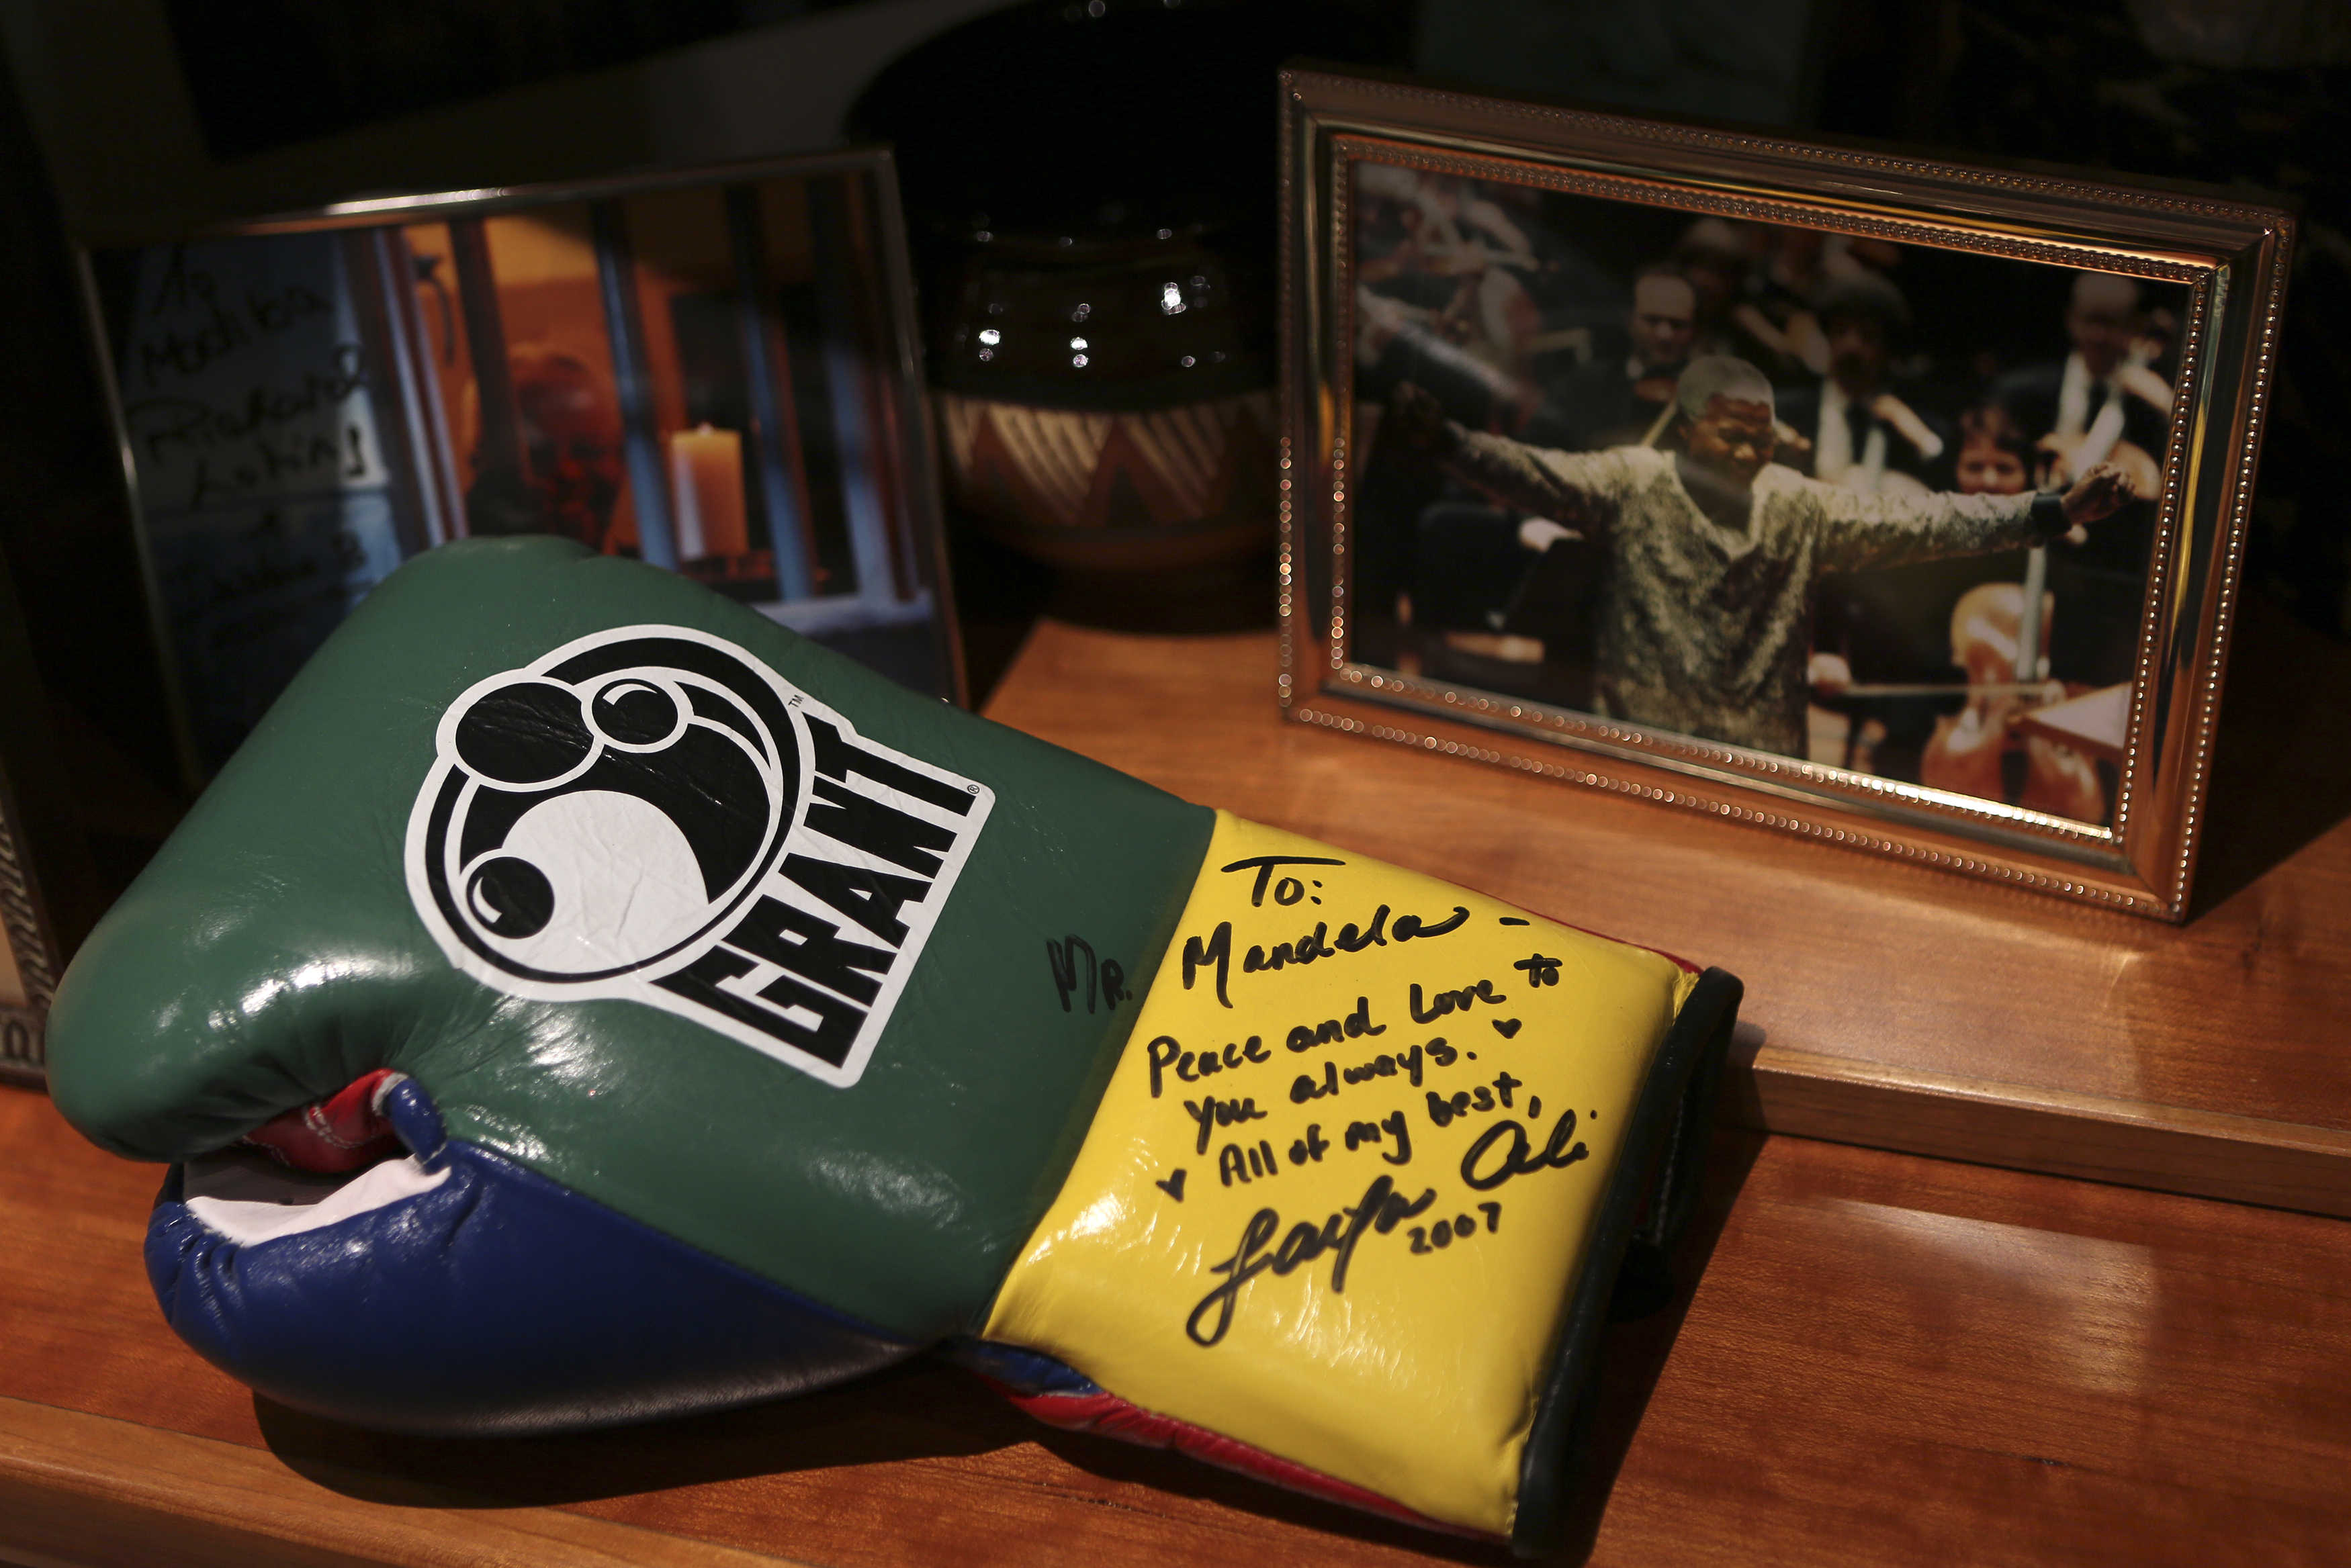 A boxing glove donated and signed by Laila Ali, daughter of retired heavyweight boxing legend Muhammad Ali, is seen at the office of former South African president and anti-apartheid leader Nelson Mandela at the newly renovated Nelson Mandela Centre of Memory in Houghton, Johannesburg, June 11, 2013.